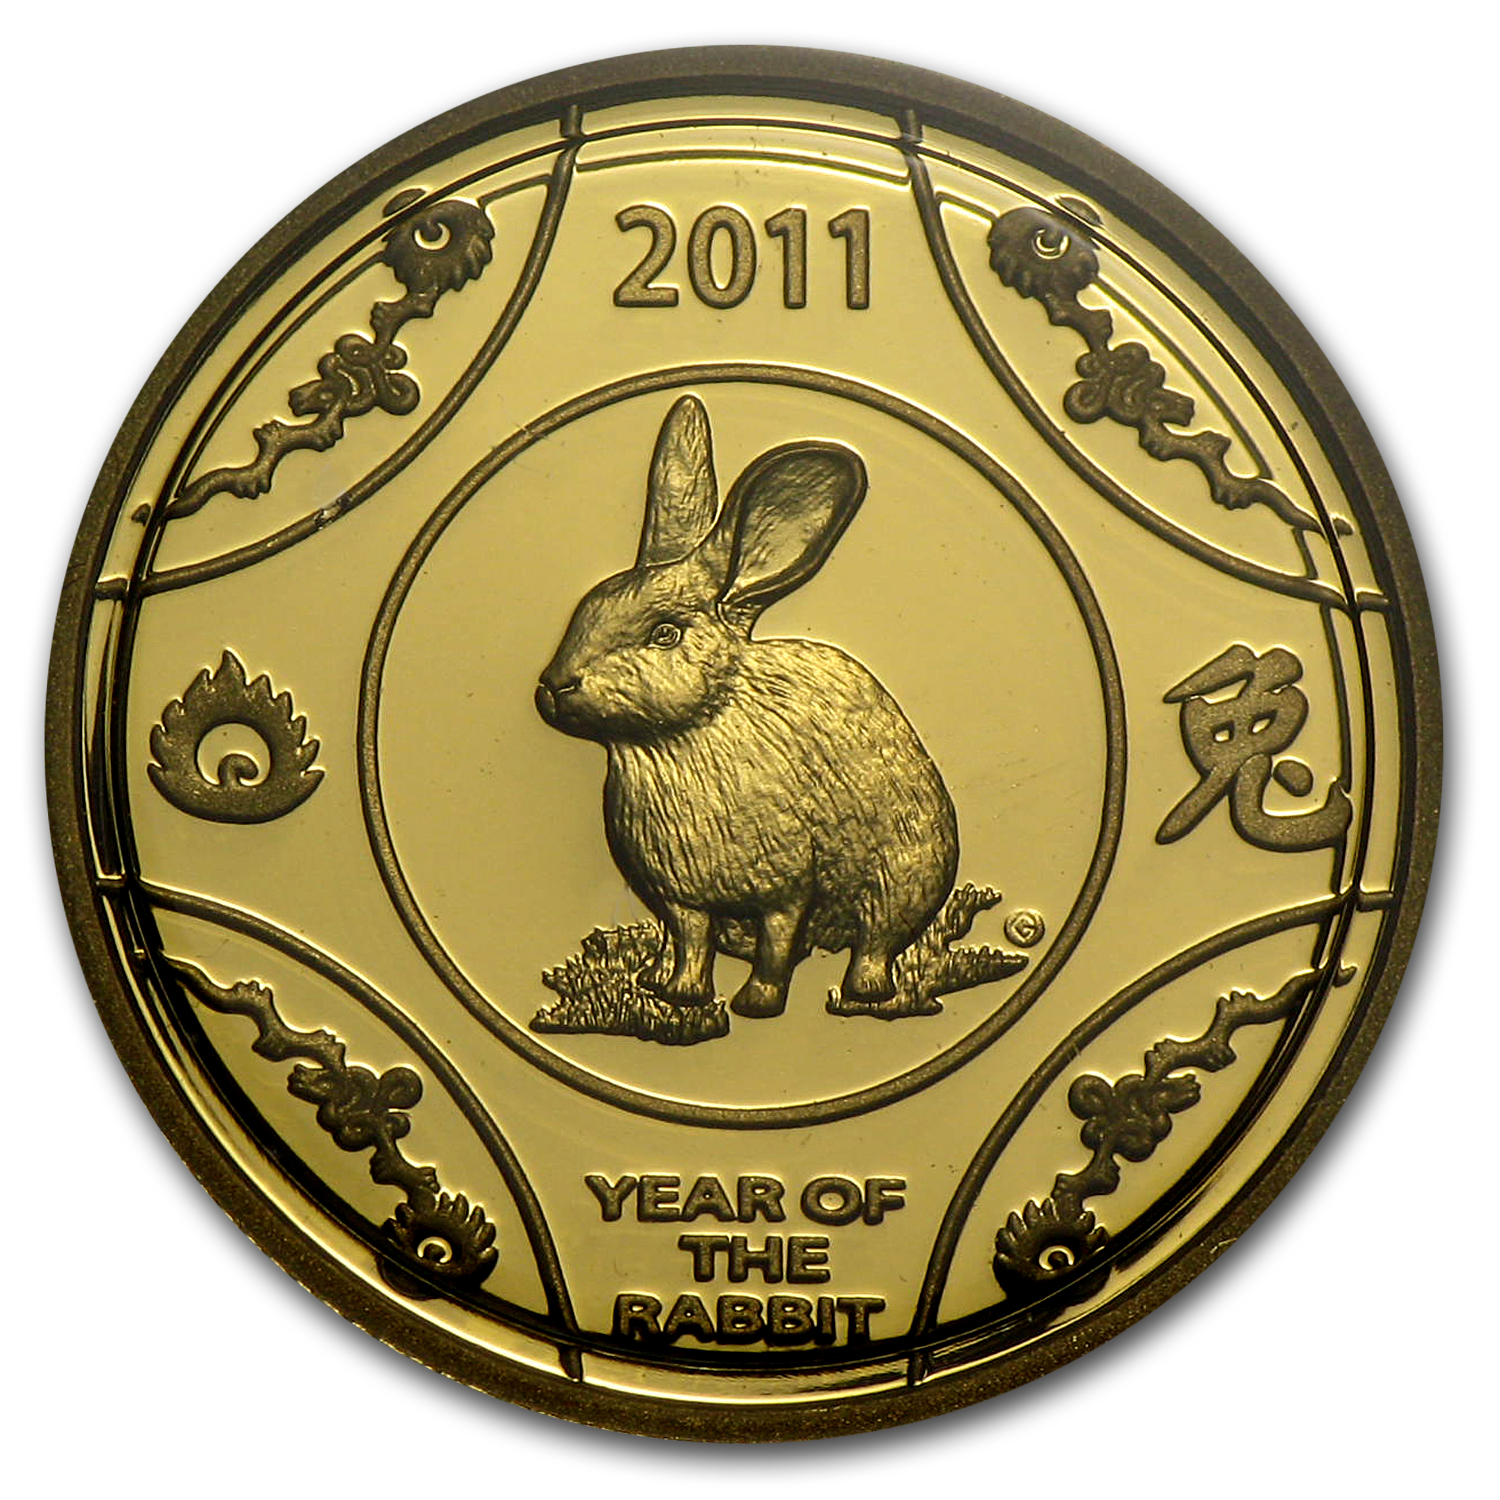 2011 Australia 1/10 oz Gold Year of the Rabbit